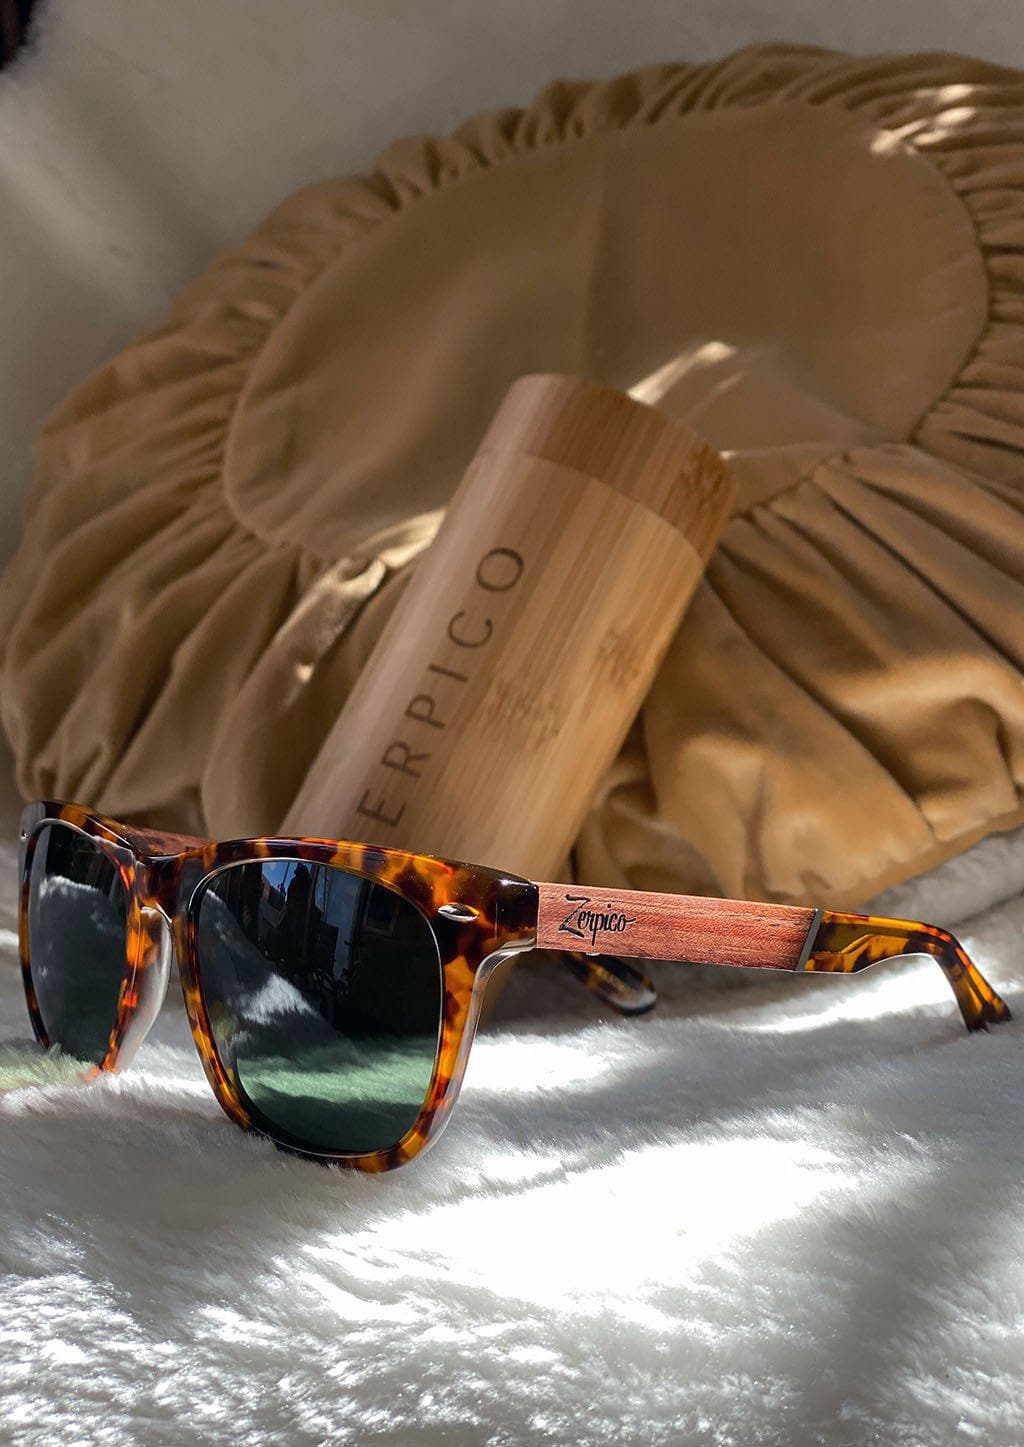 Eyewood Wayfarers - Fusion - Lynx - A mix of acetate and wood makes theses sunglasses unique. From the front in sun.